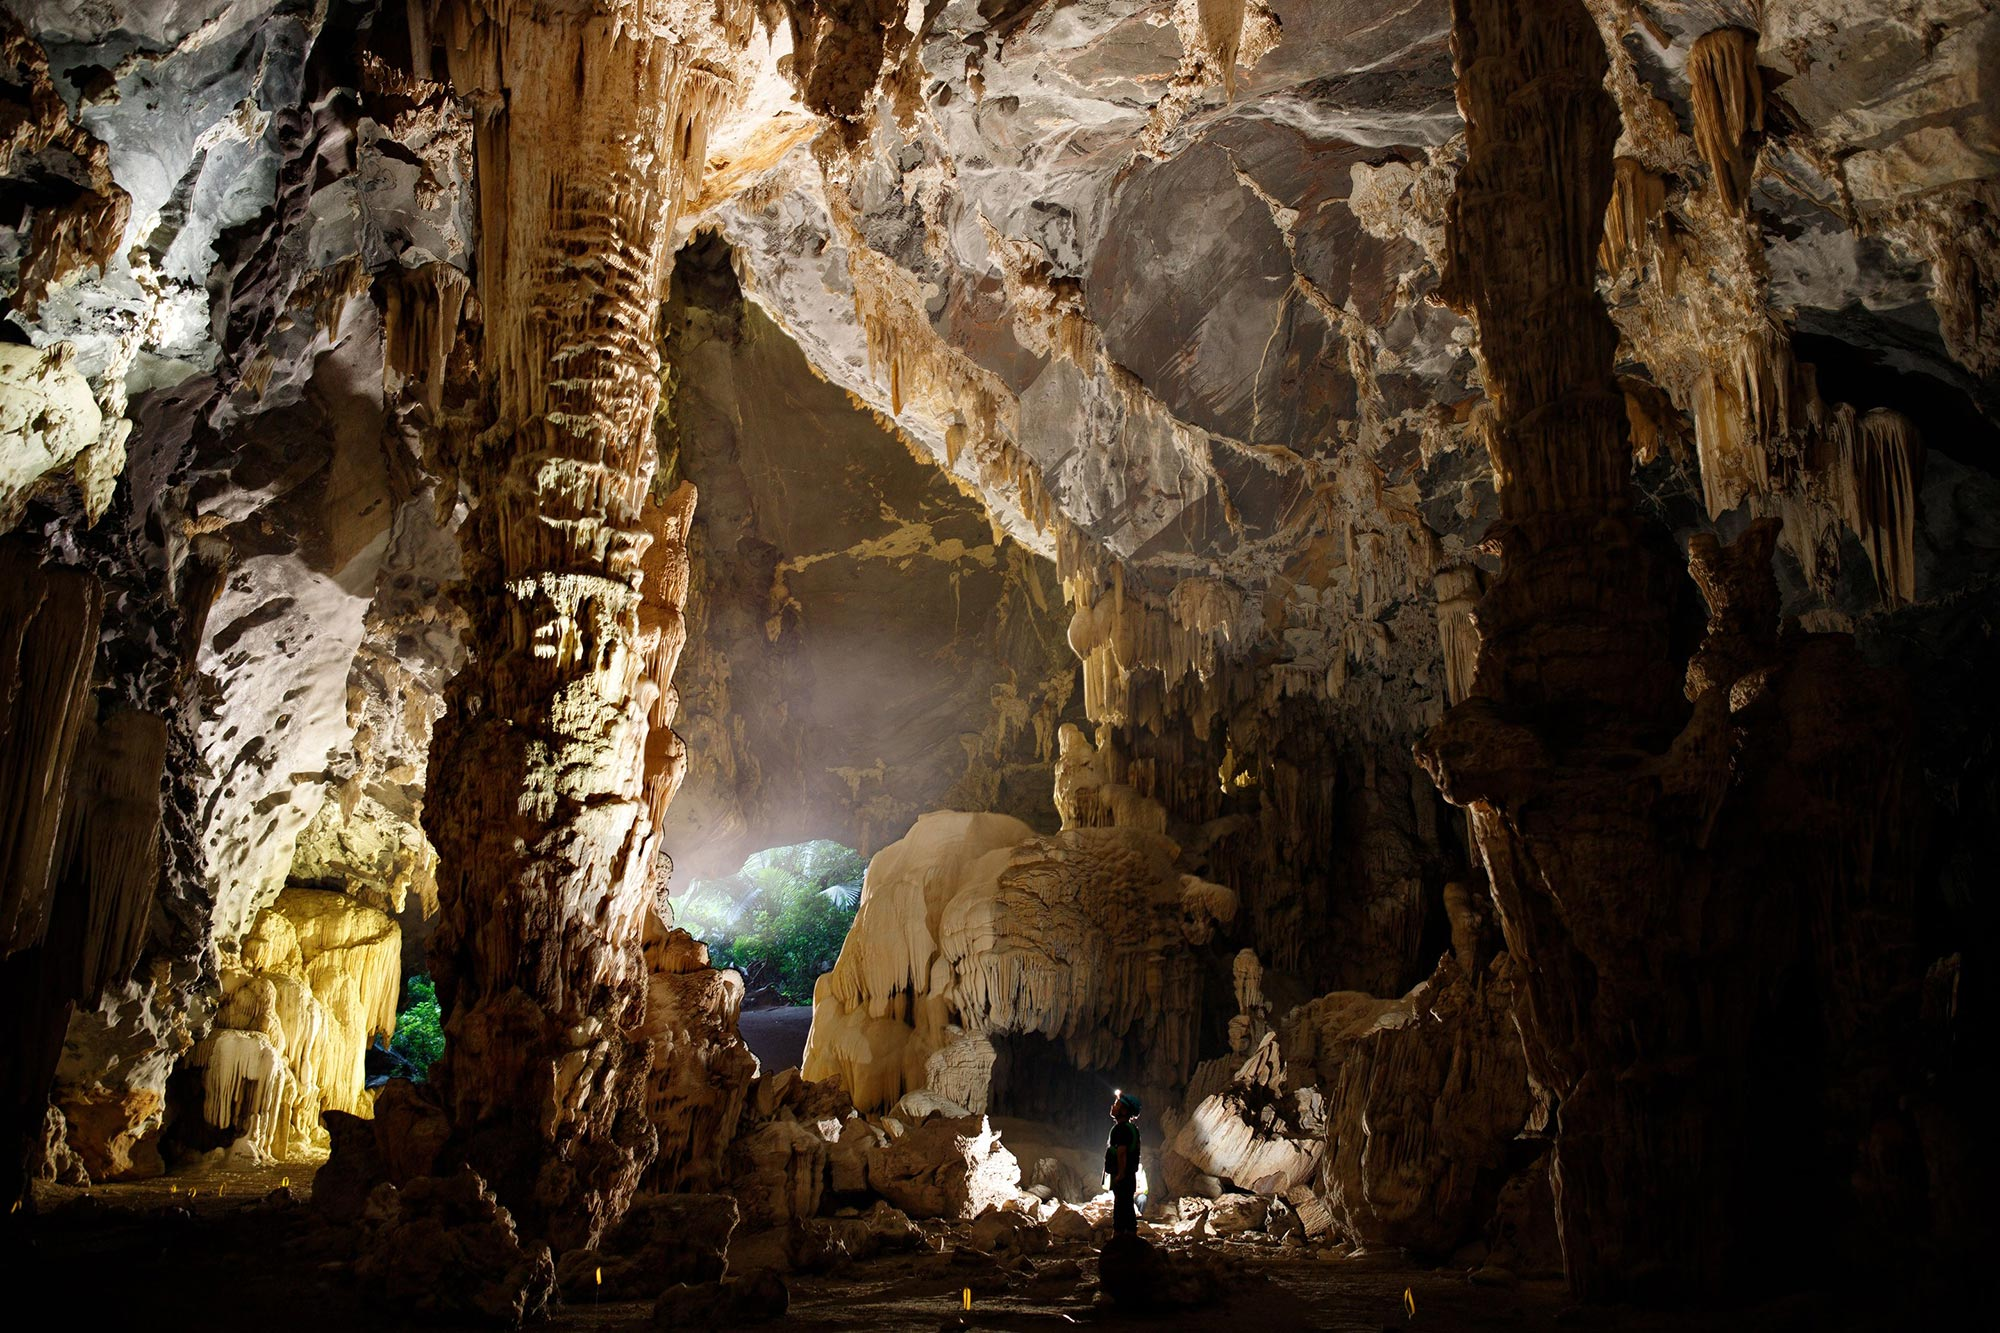 The spectacular limestone formations in the Tú Làn limestone caves, formed over many years of weathering